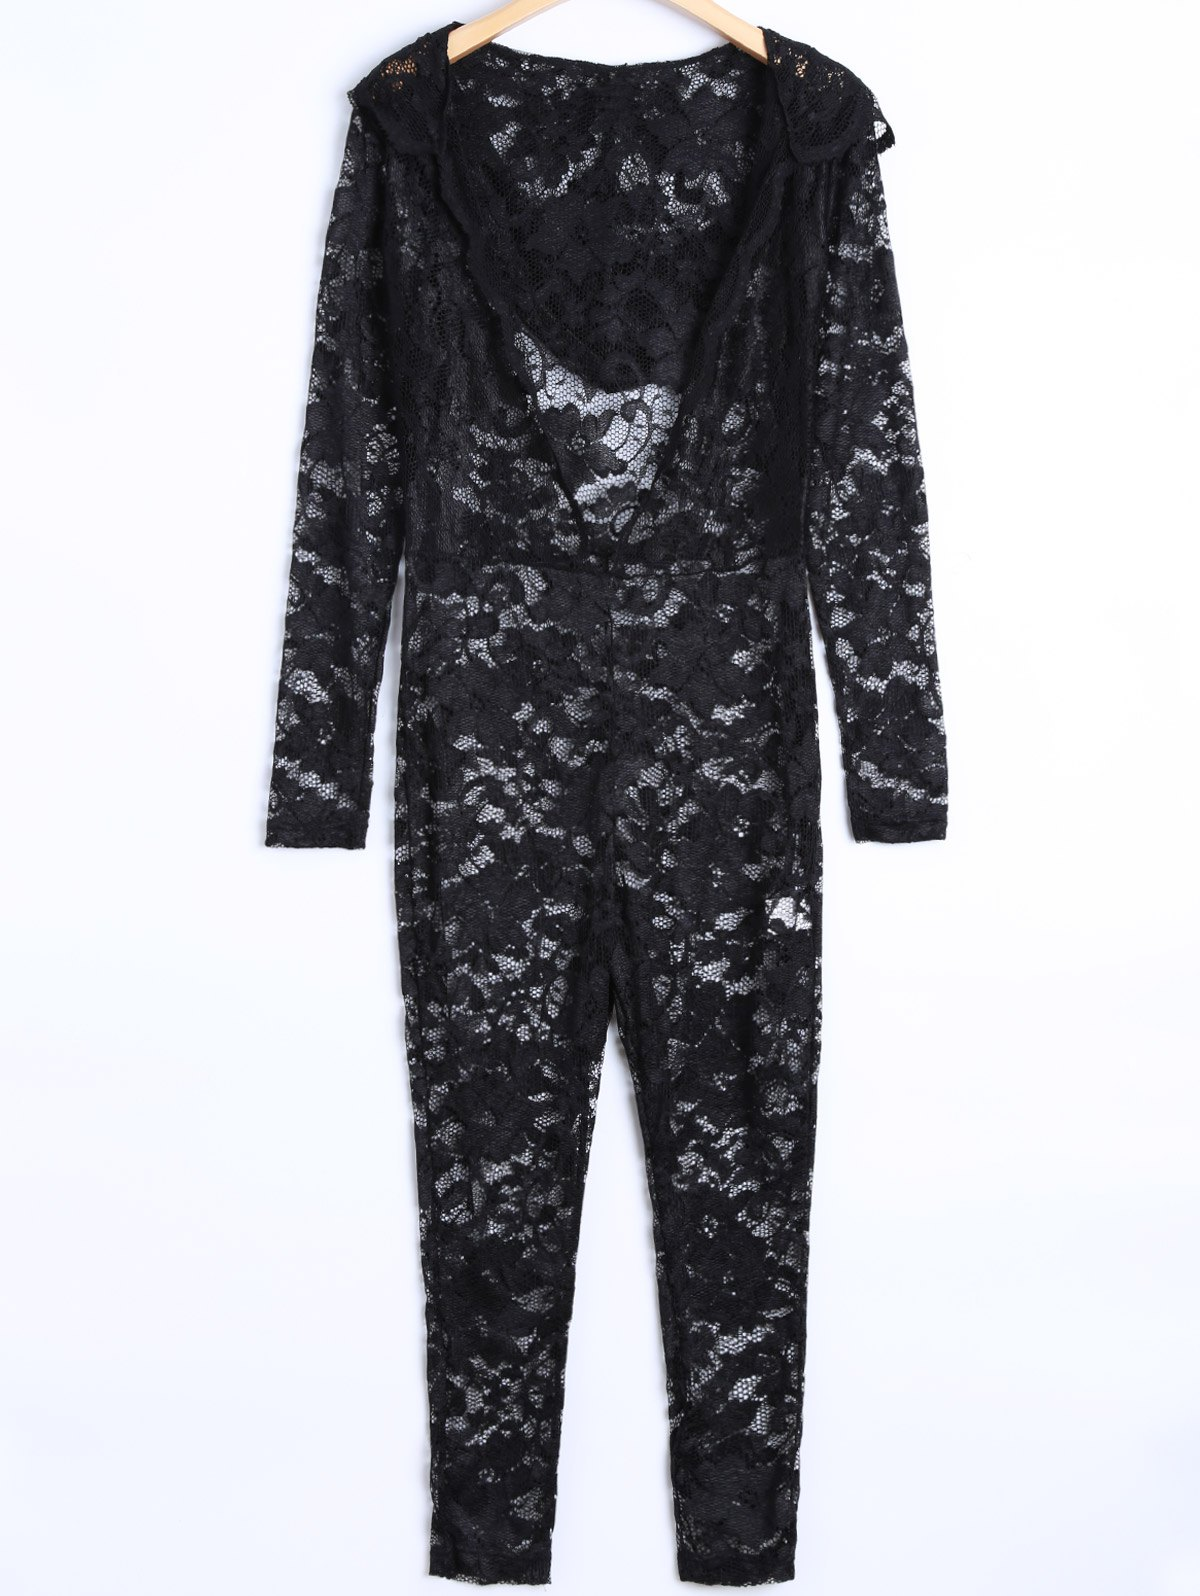 See-Through Lace Jumpsuit